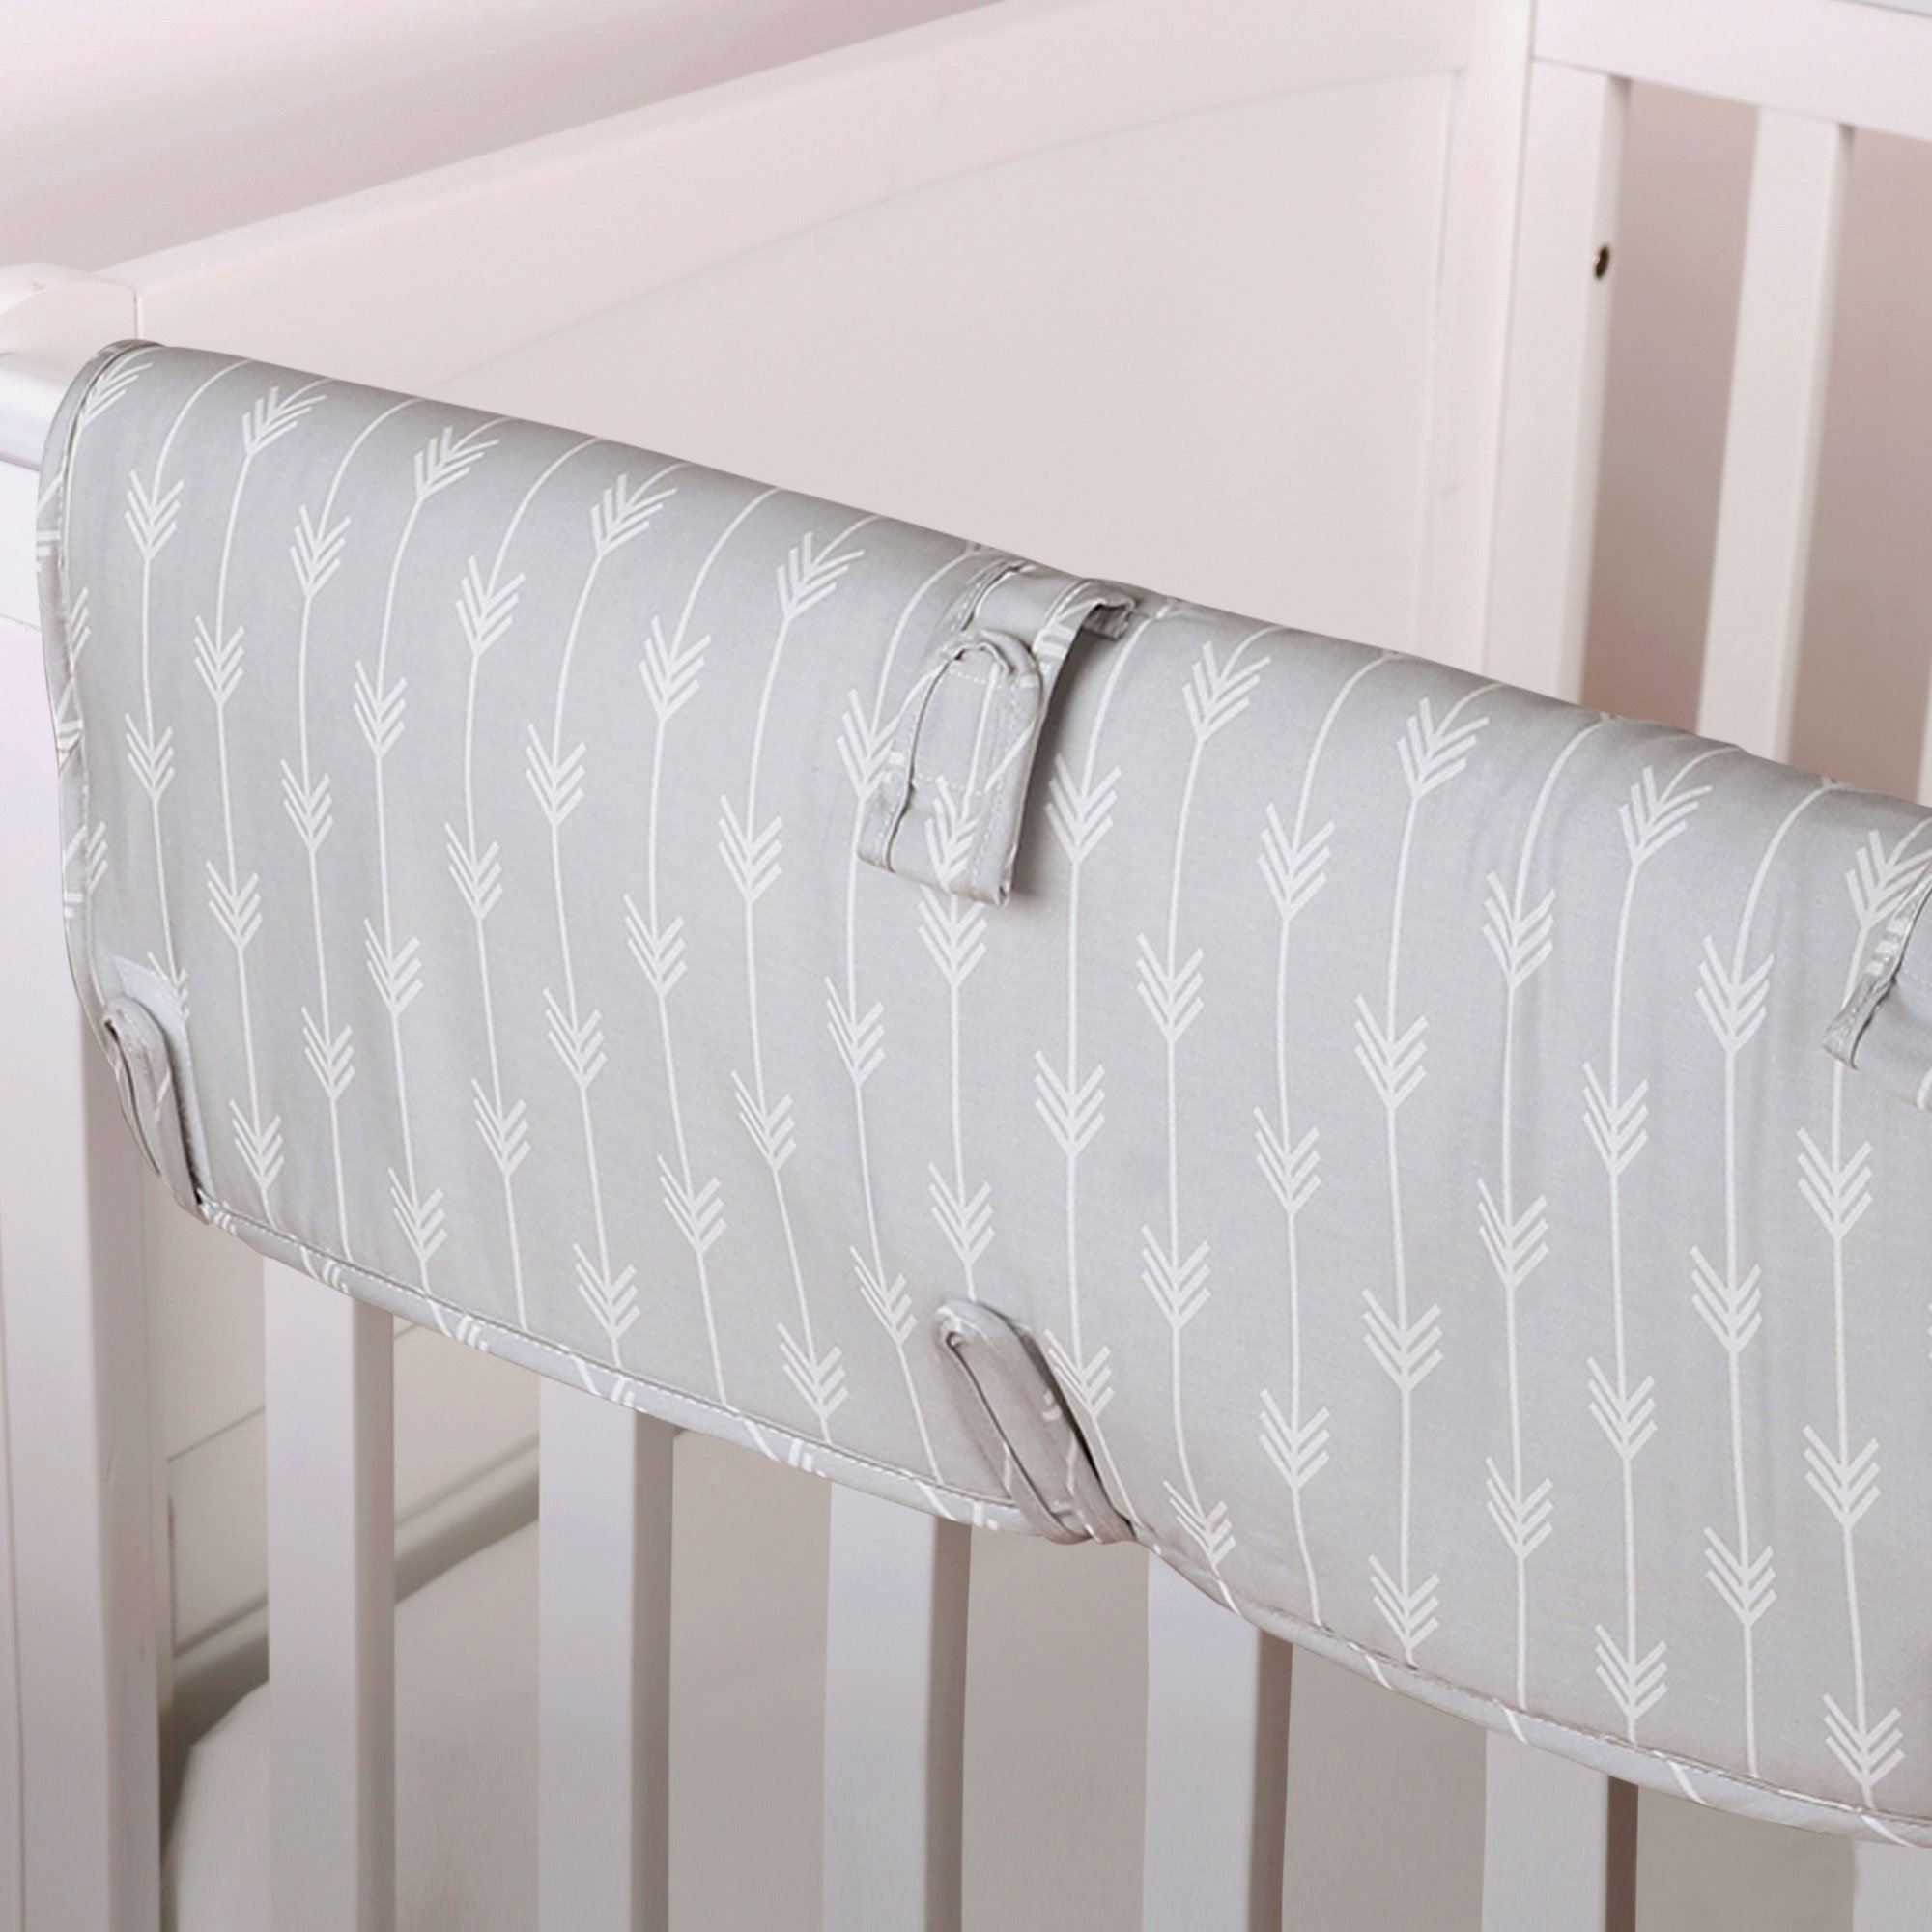 Grey Arrow Print 100% Cotton Padded Crib Rail Guard by The Peanut Shell